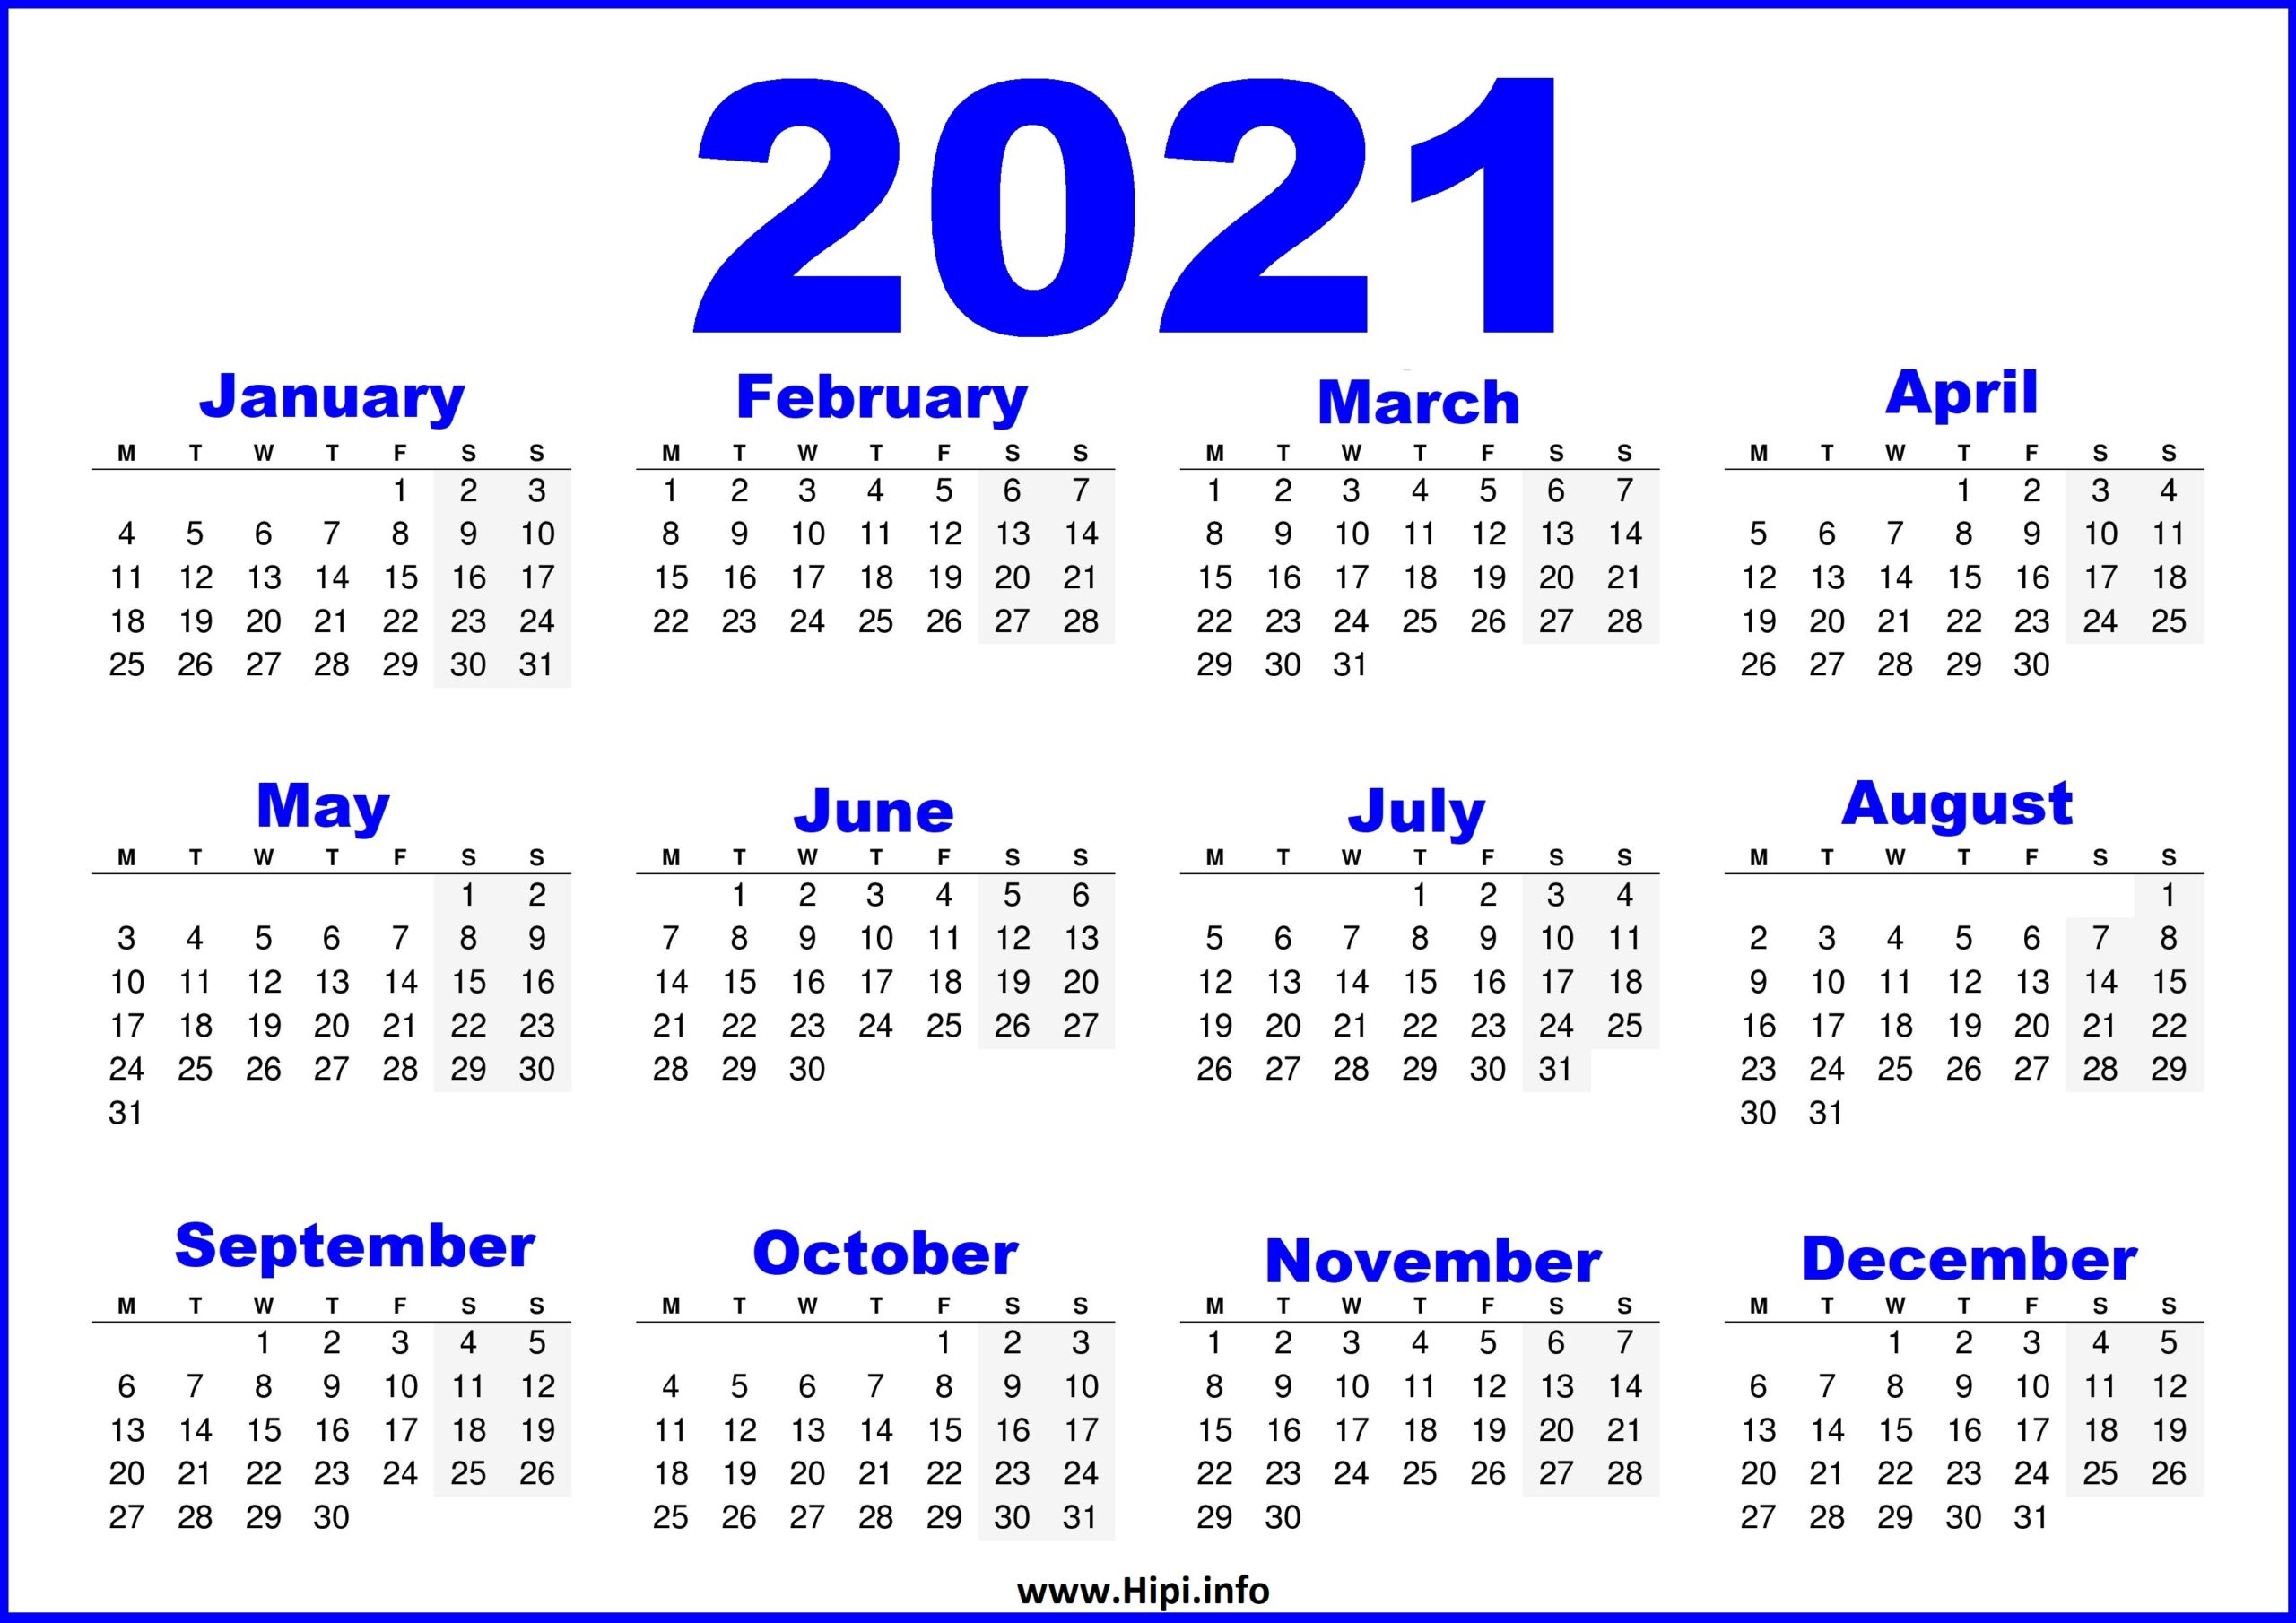 Free printable calendar 2021 template are available here in blank & editable format. Free Printable Calendar 2021 UK - Blue - Hipi.info ...